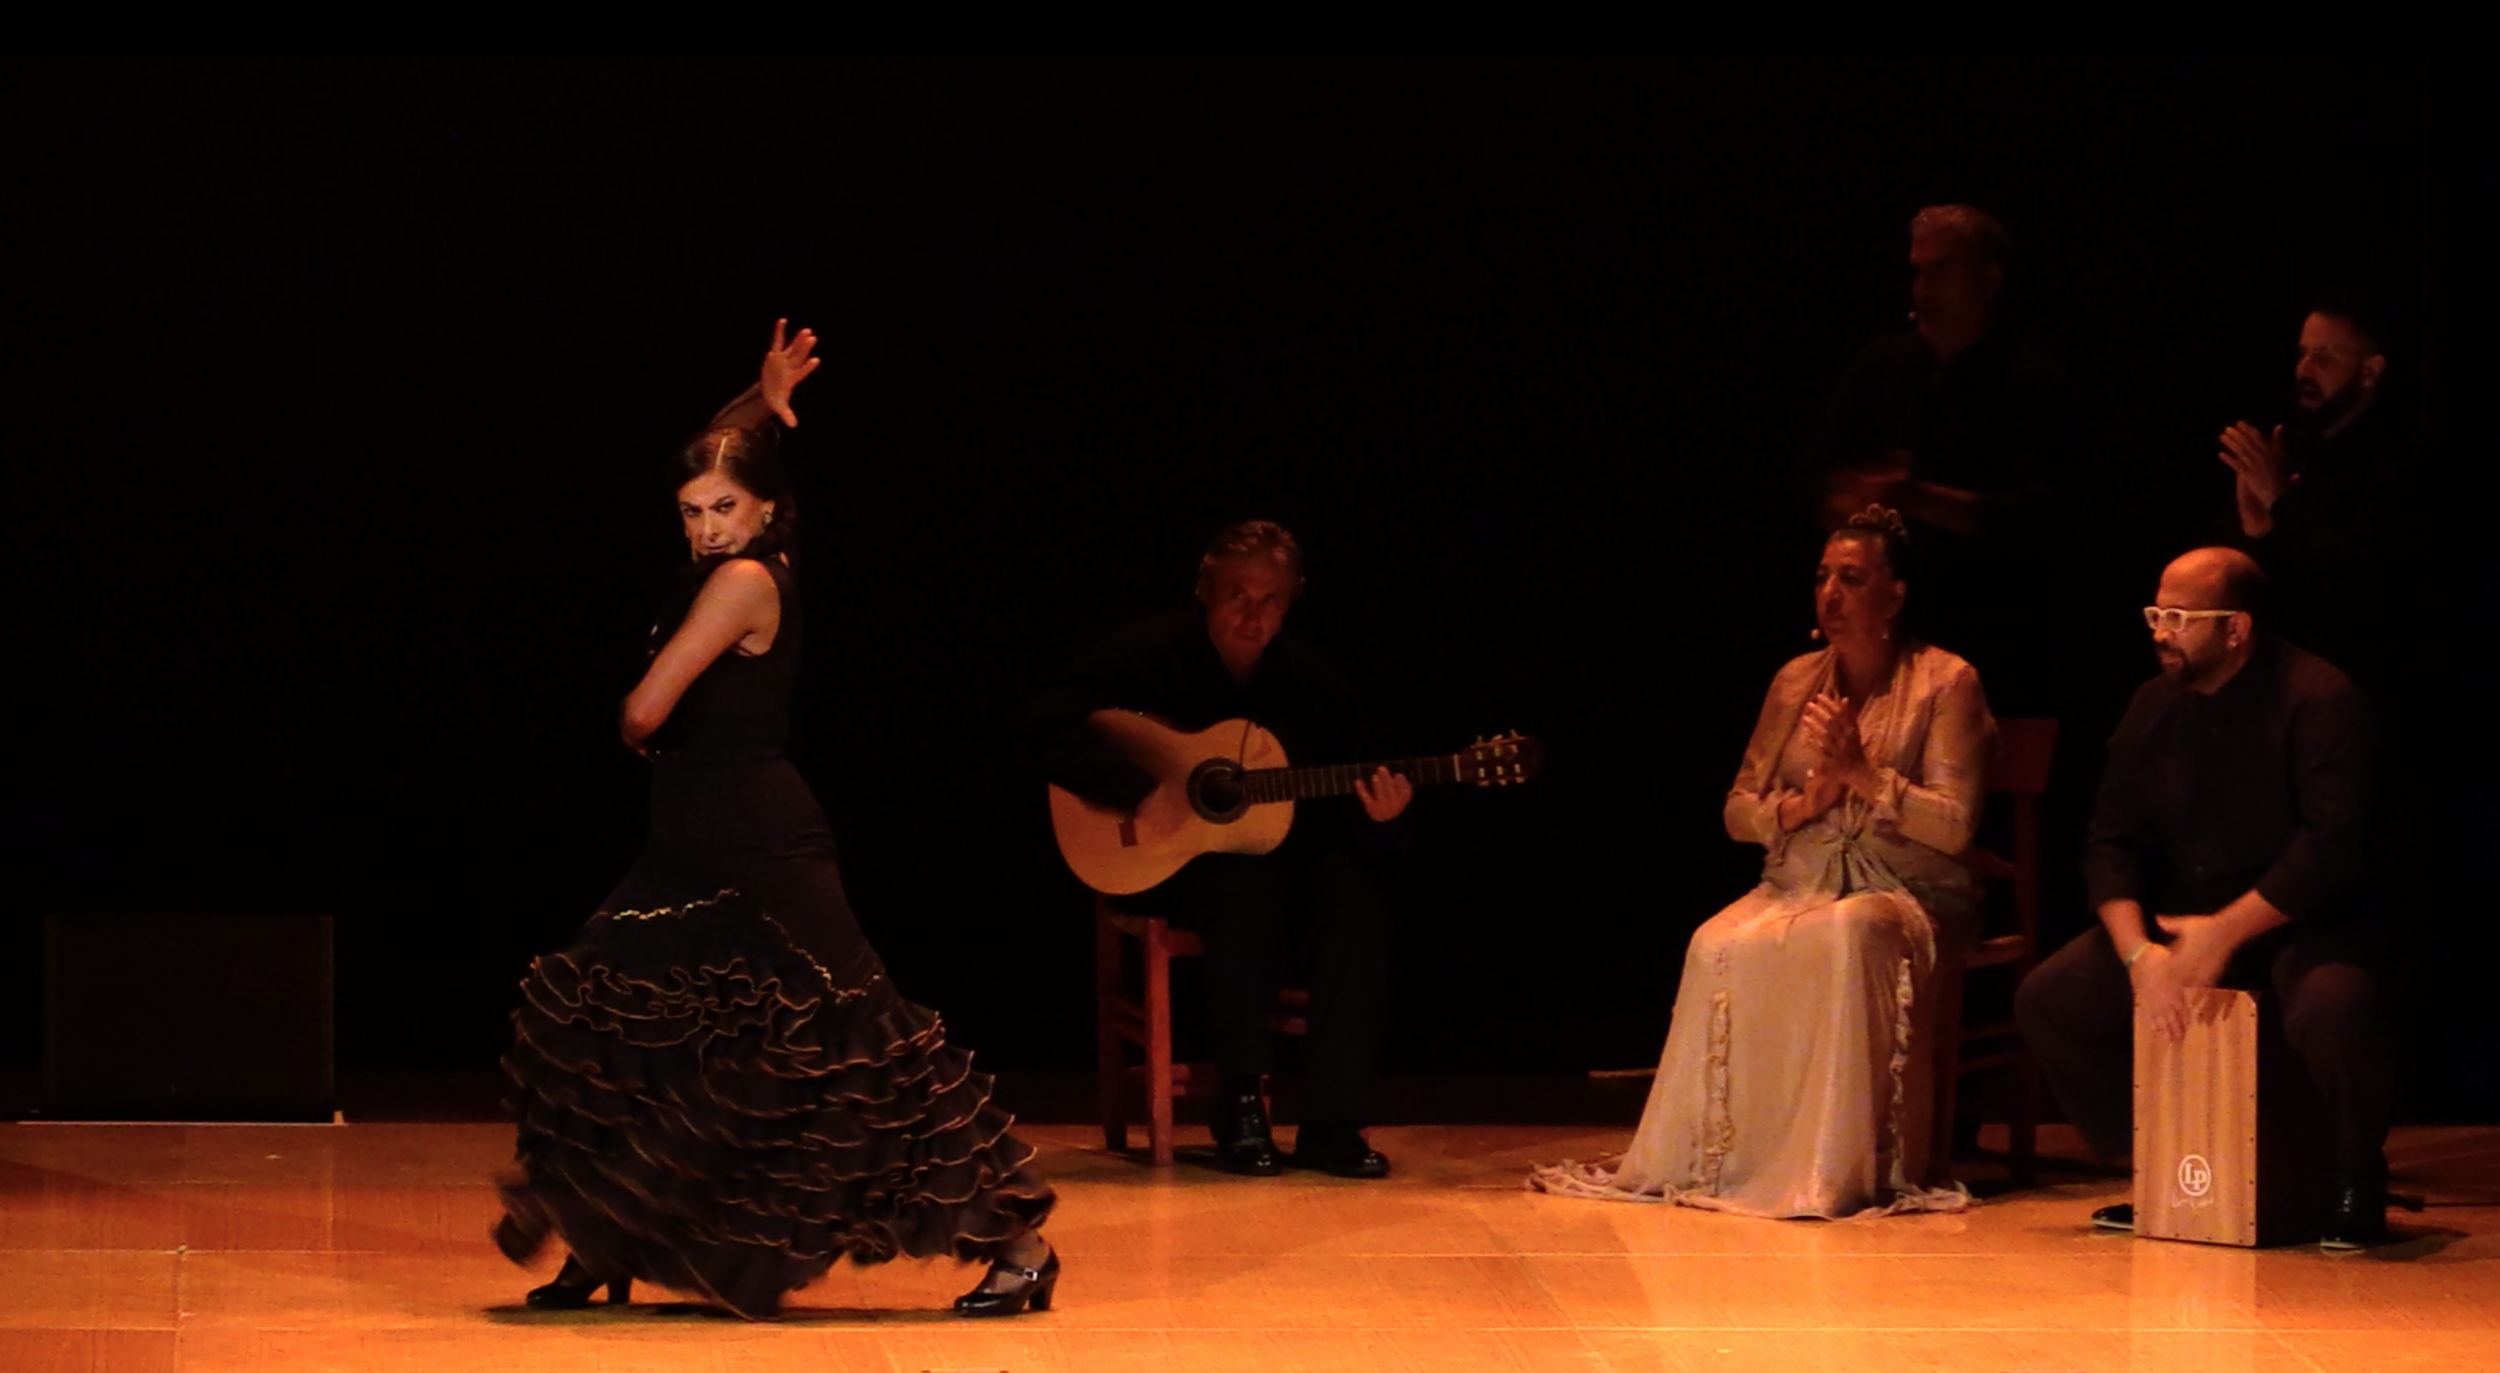 Passionately Professional - Donations help Theatre Flamenco of San Francisco to hire world class dancers and musicians and invest in productions provided by Theatre Flamenco of San Francisco. Our 53rd home season in November, 2019 will be with top level dancers and musicians from Spain.